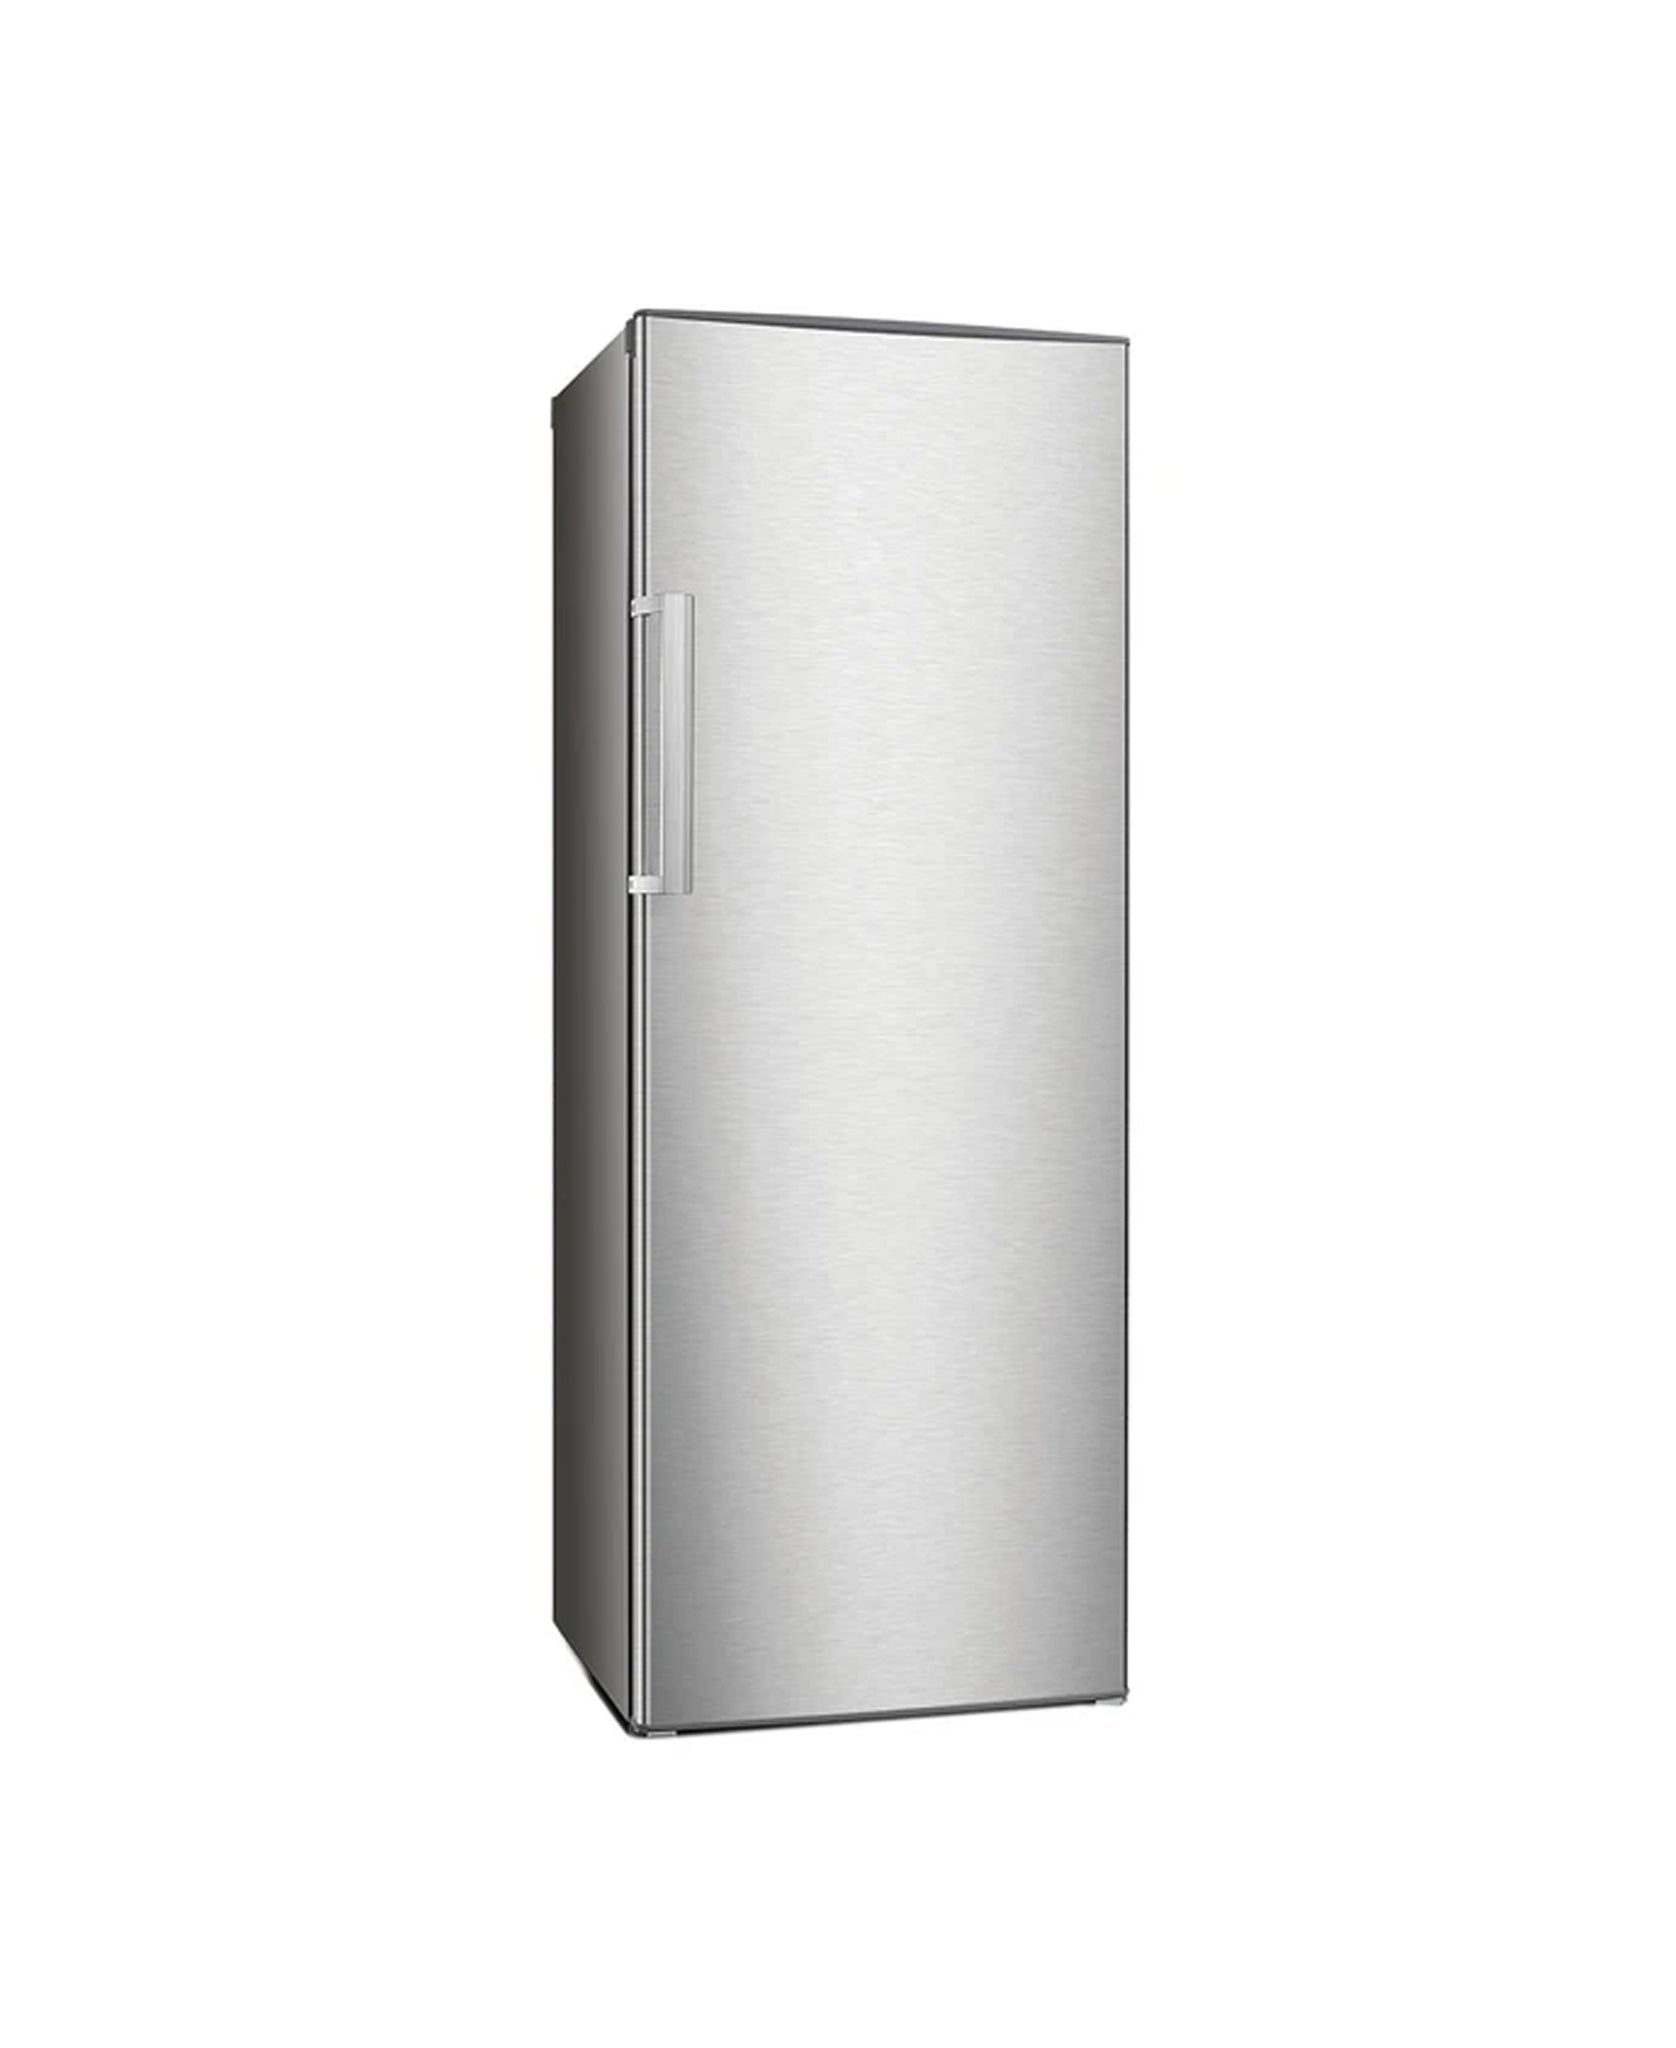 Defy 335L Upright Fridge Inox DFD430